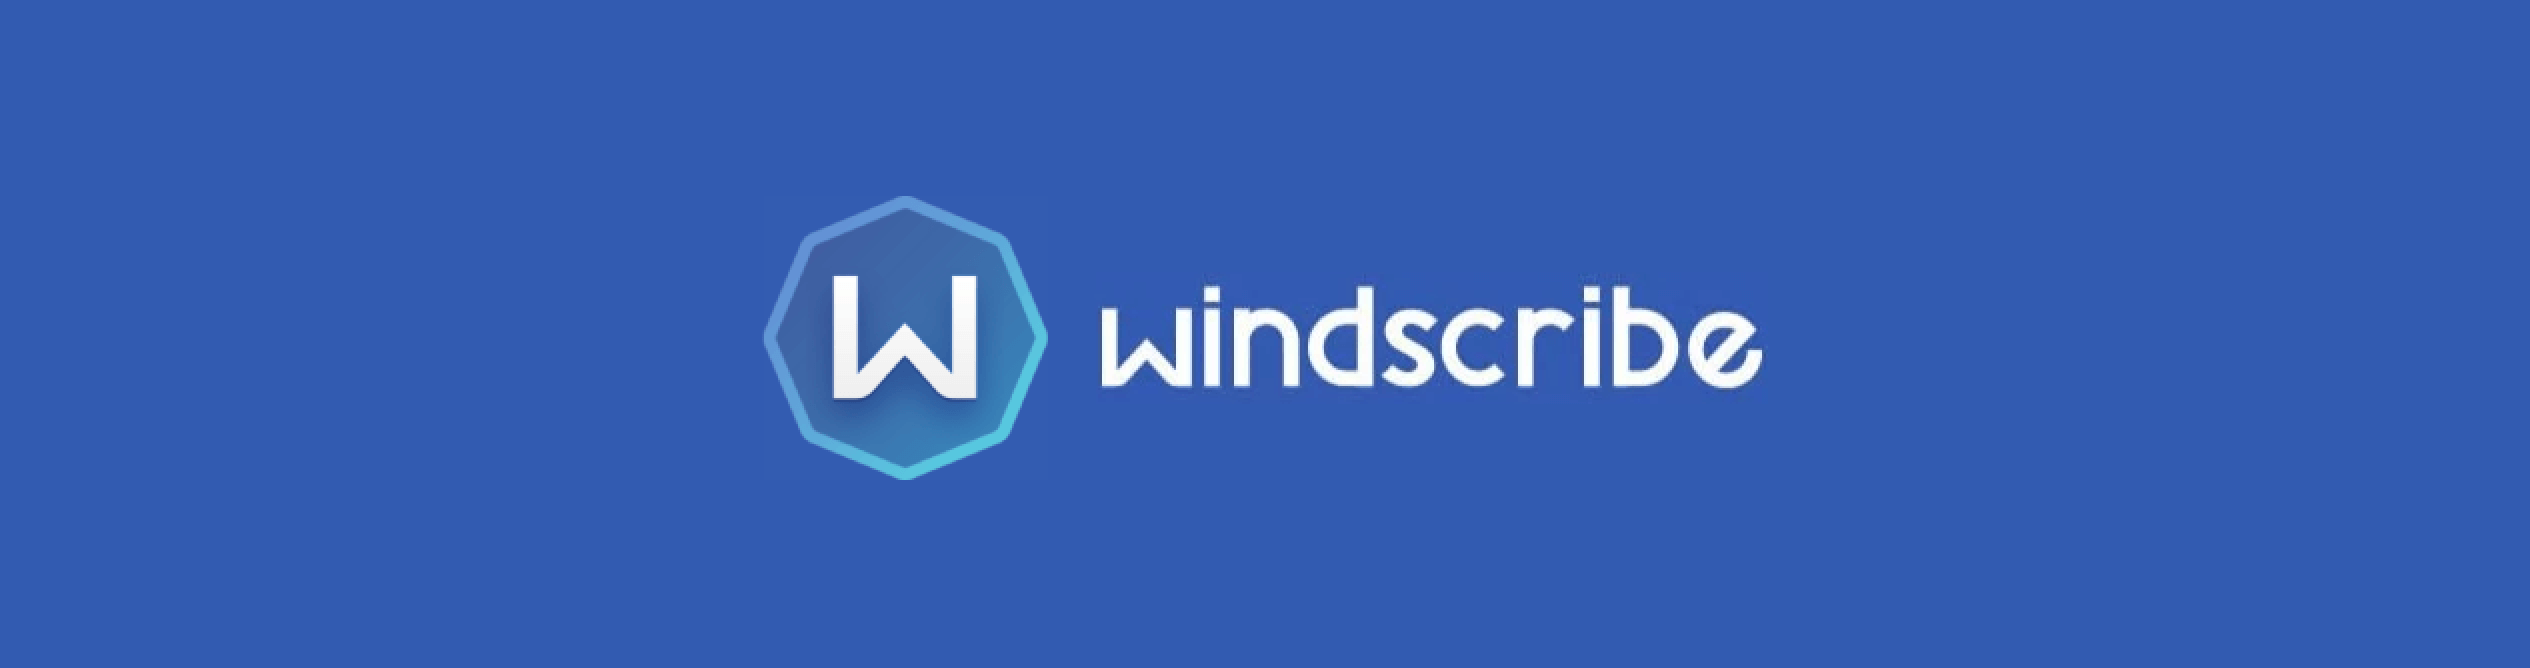 Windscribe Voucher Code